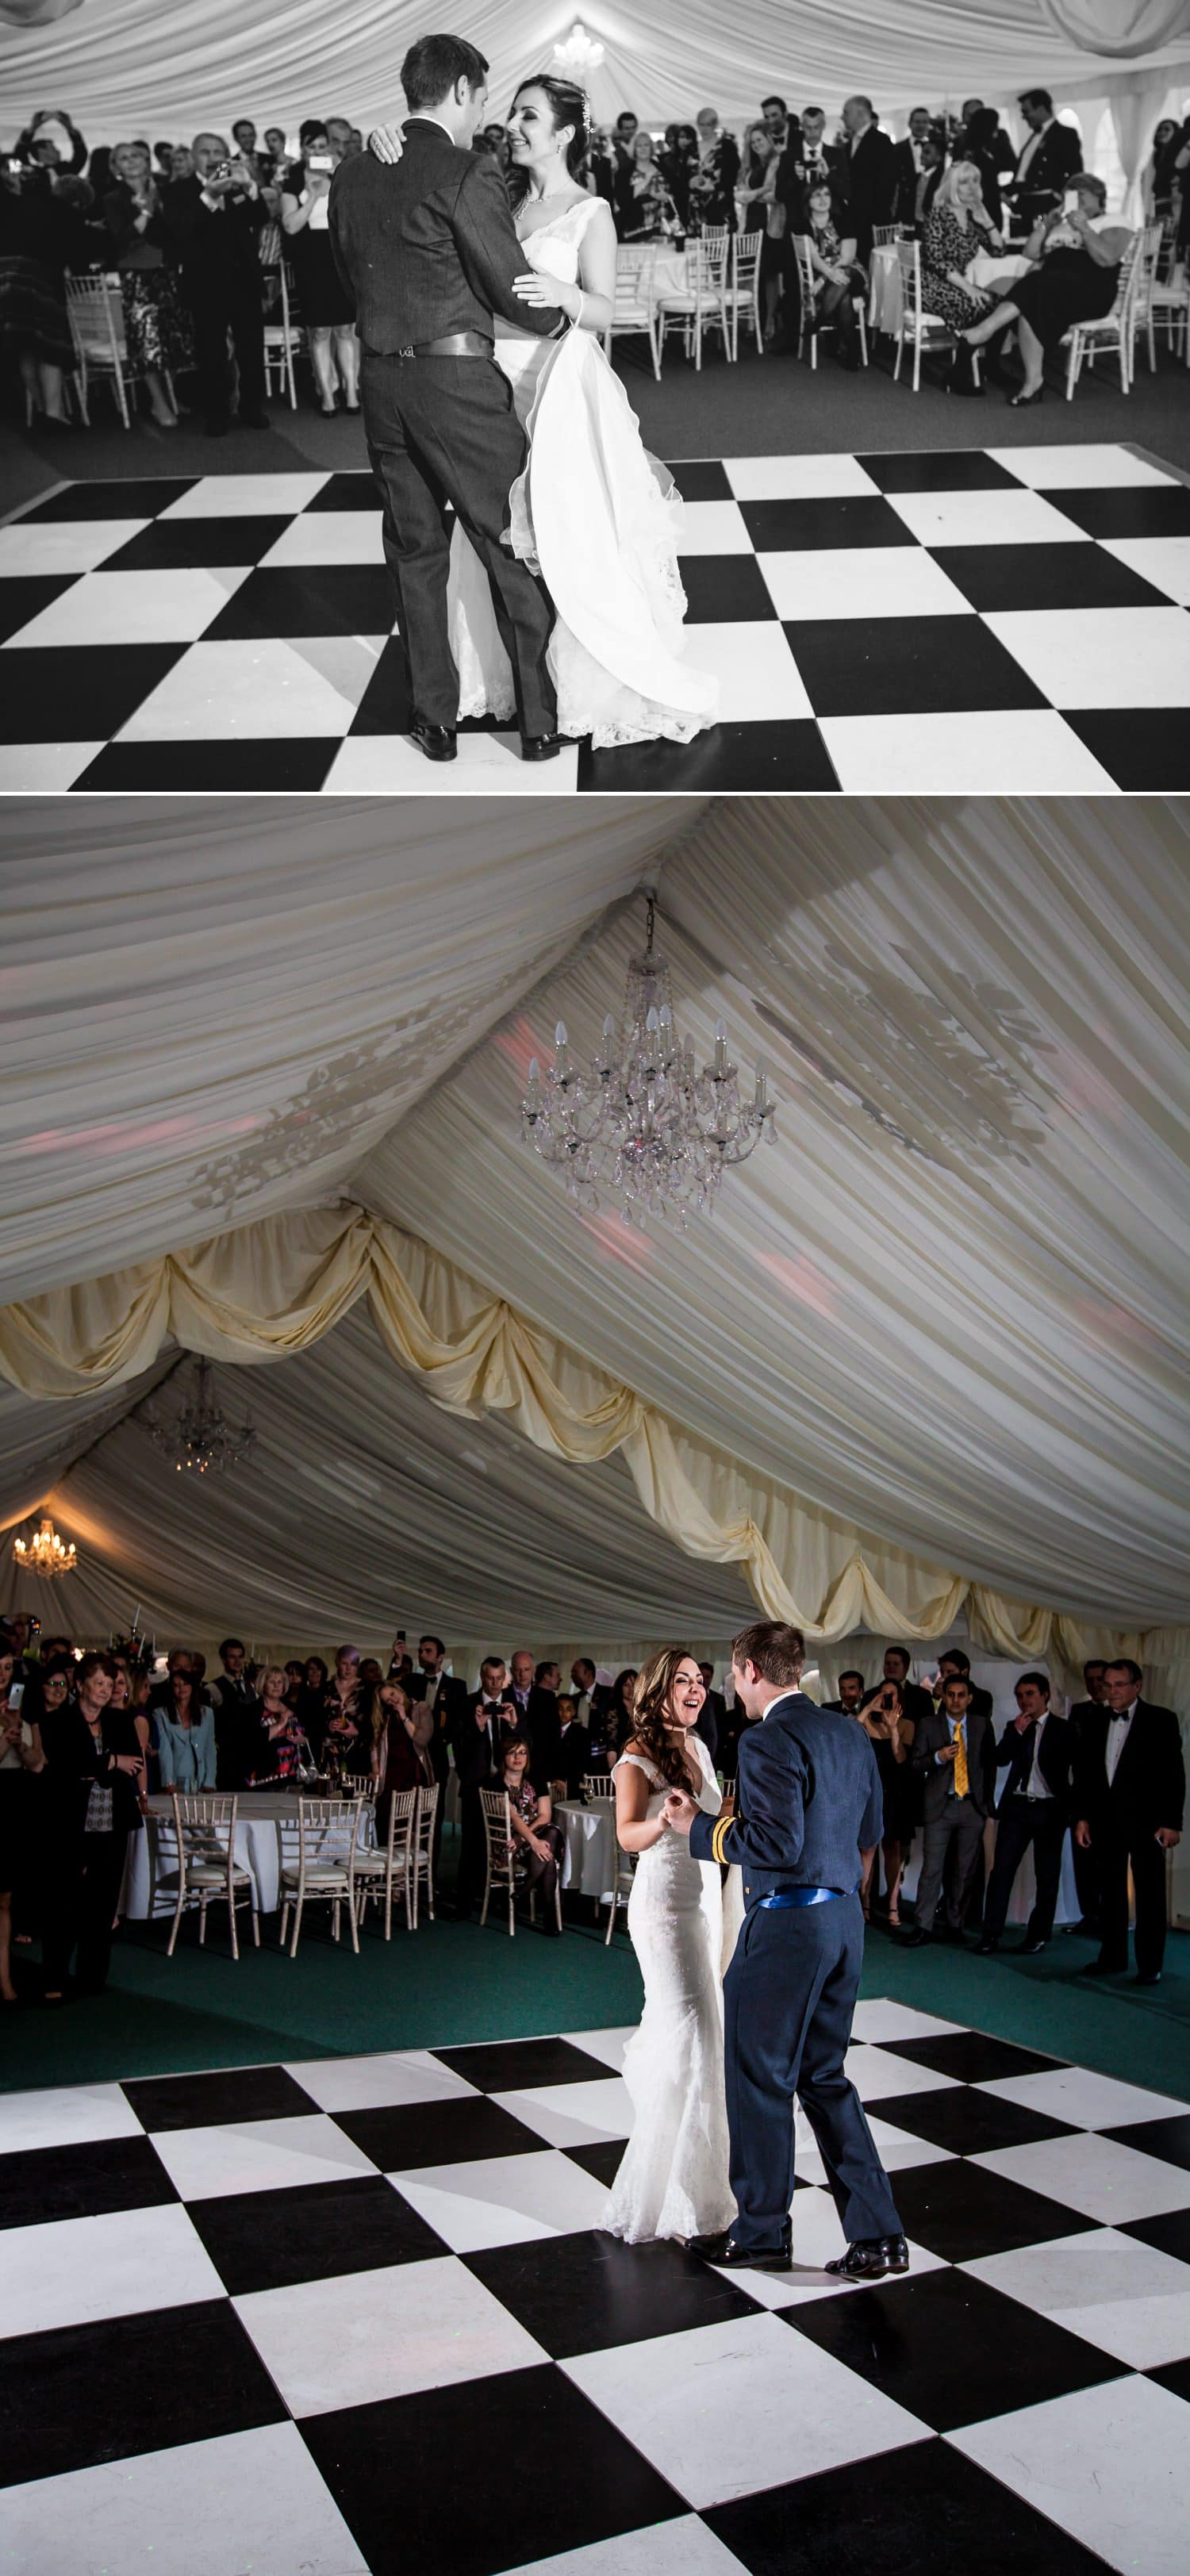 Weding Photography of first dance at Netley Hall, Shropshire